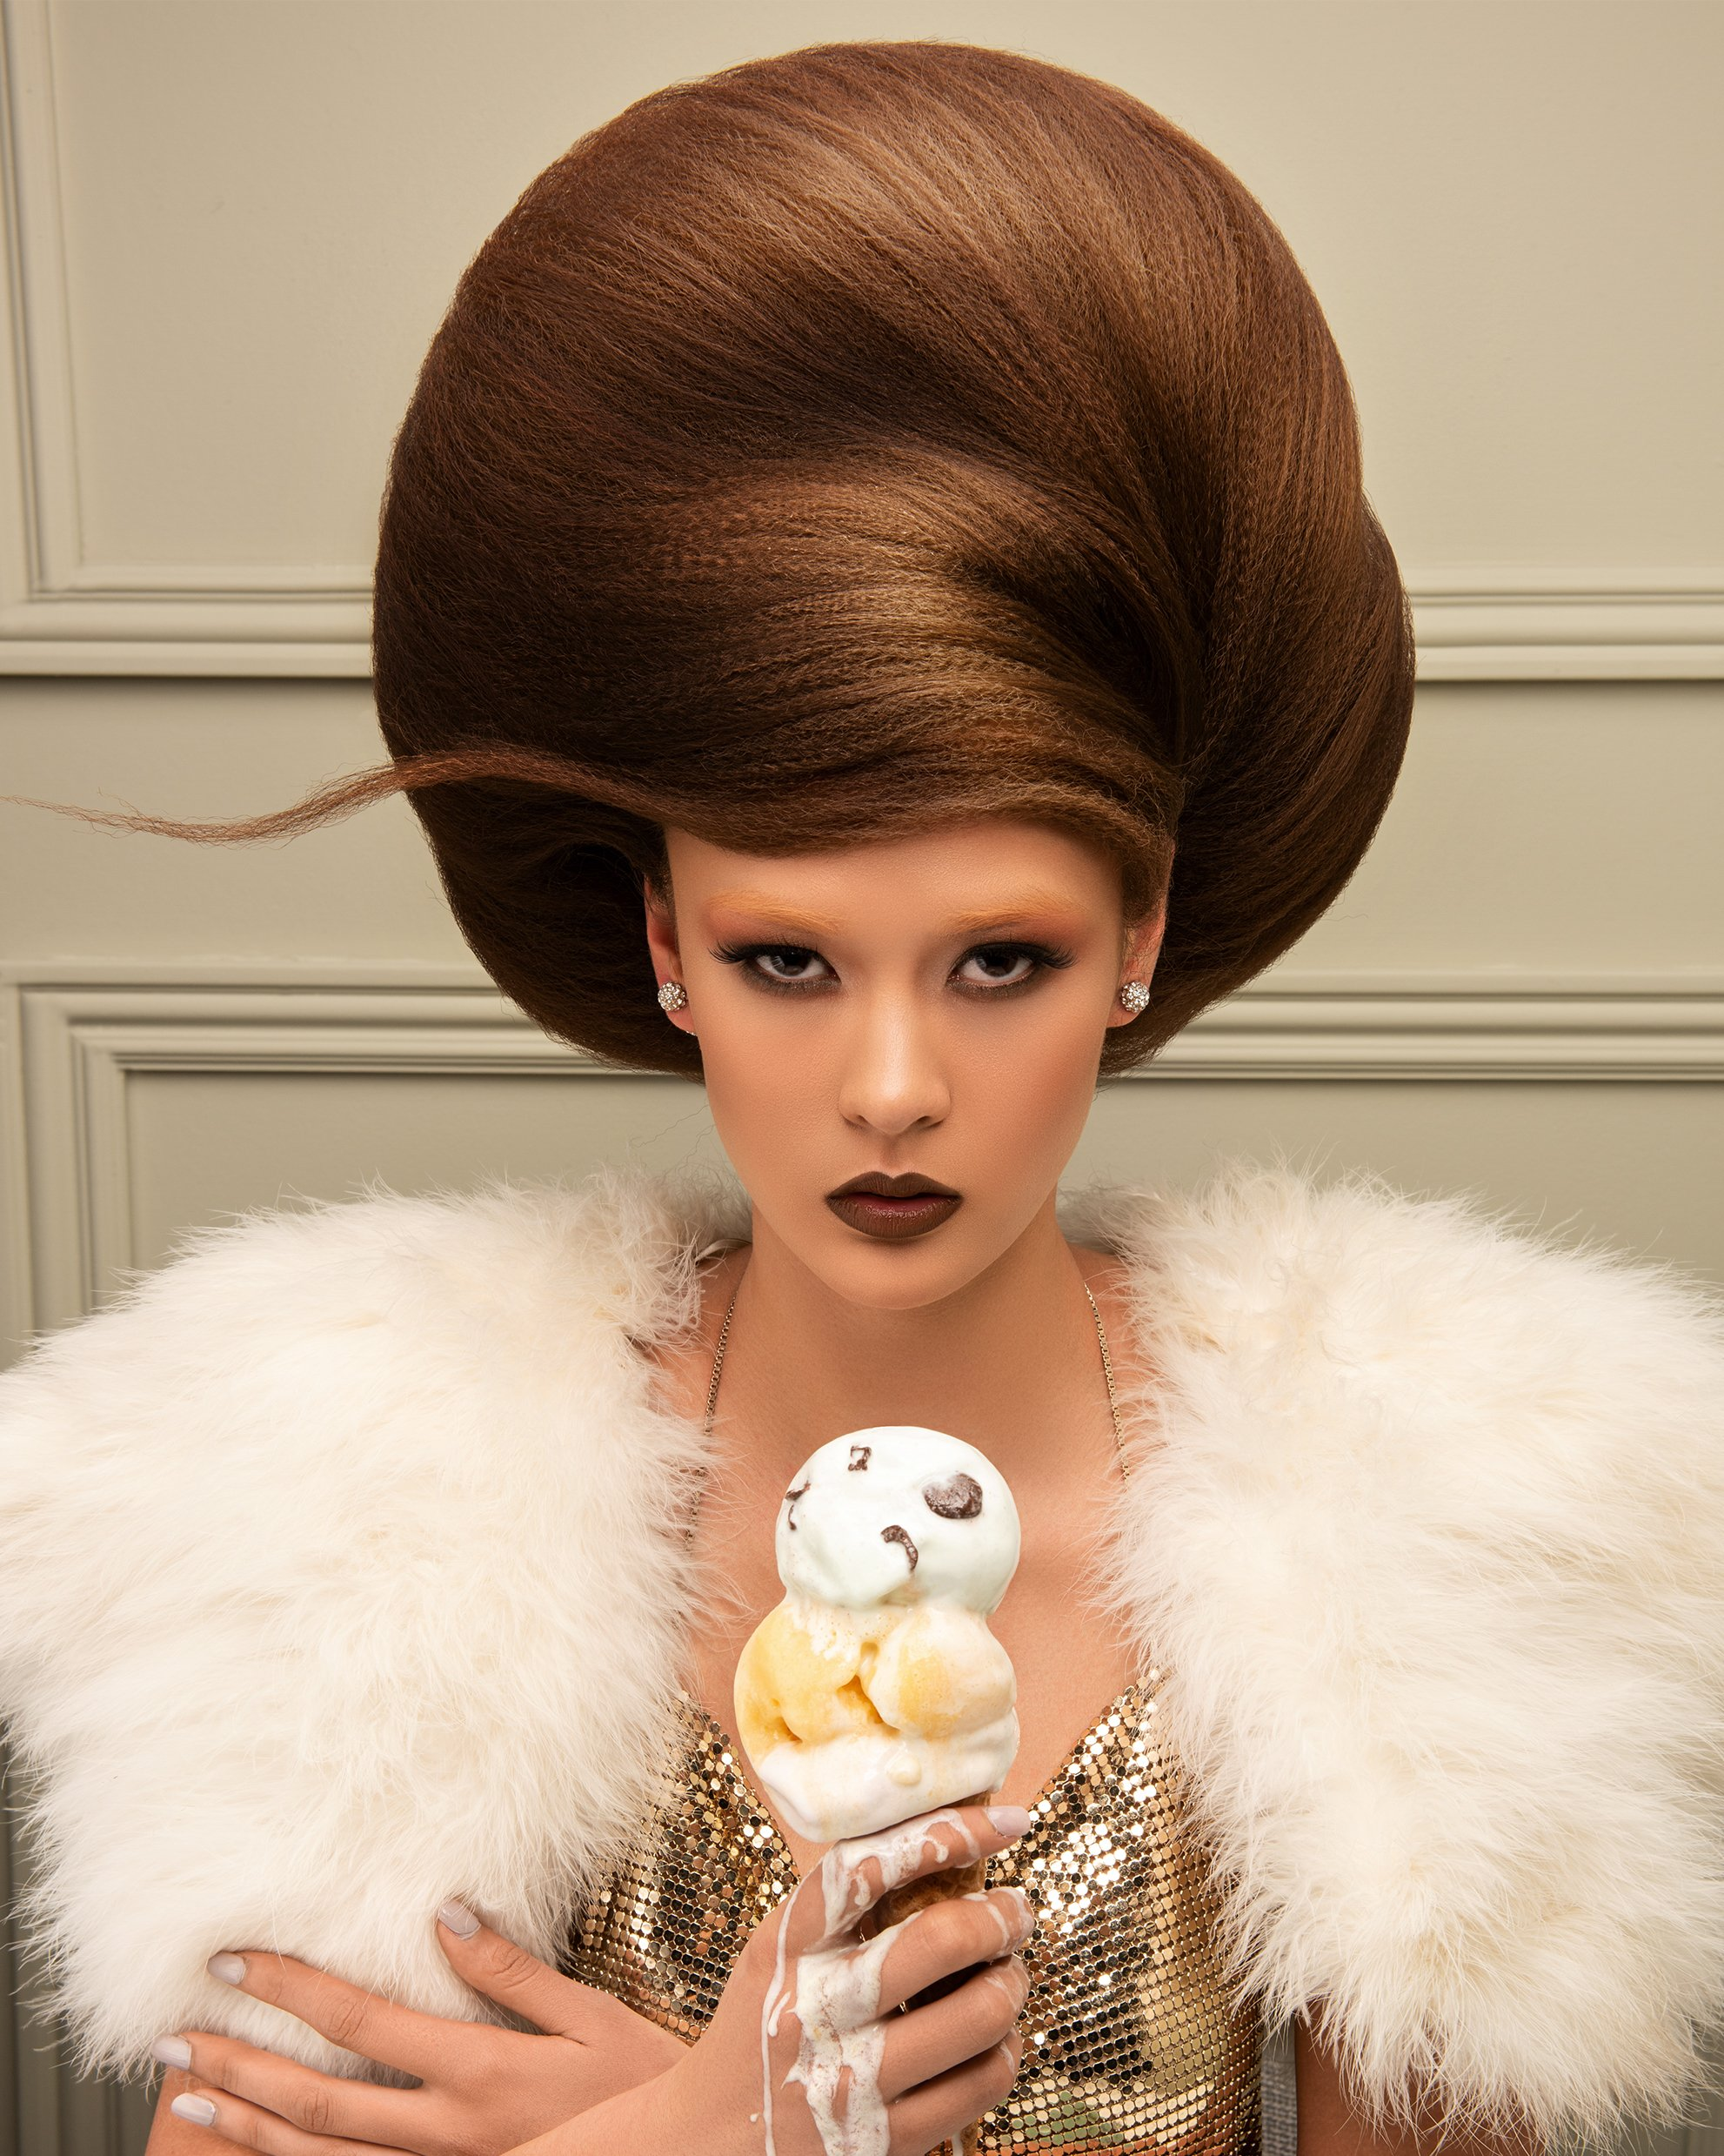 2021 NAHA Finalists: Master Hairstylist of the Year